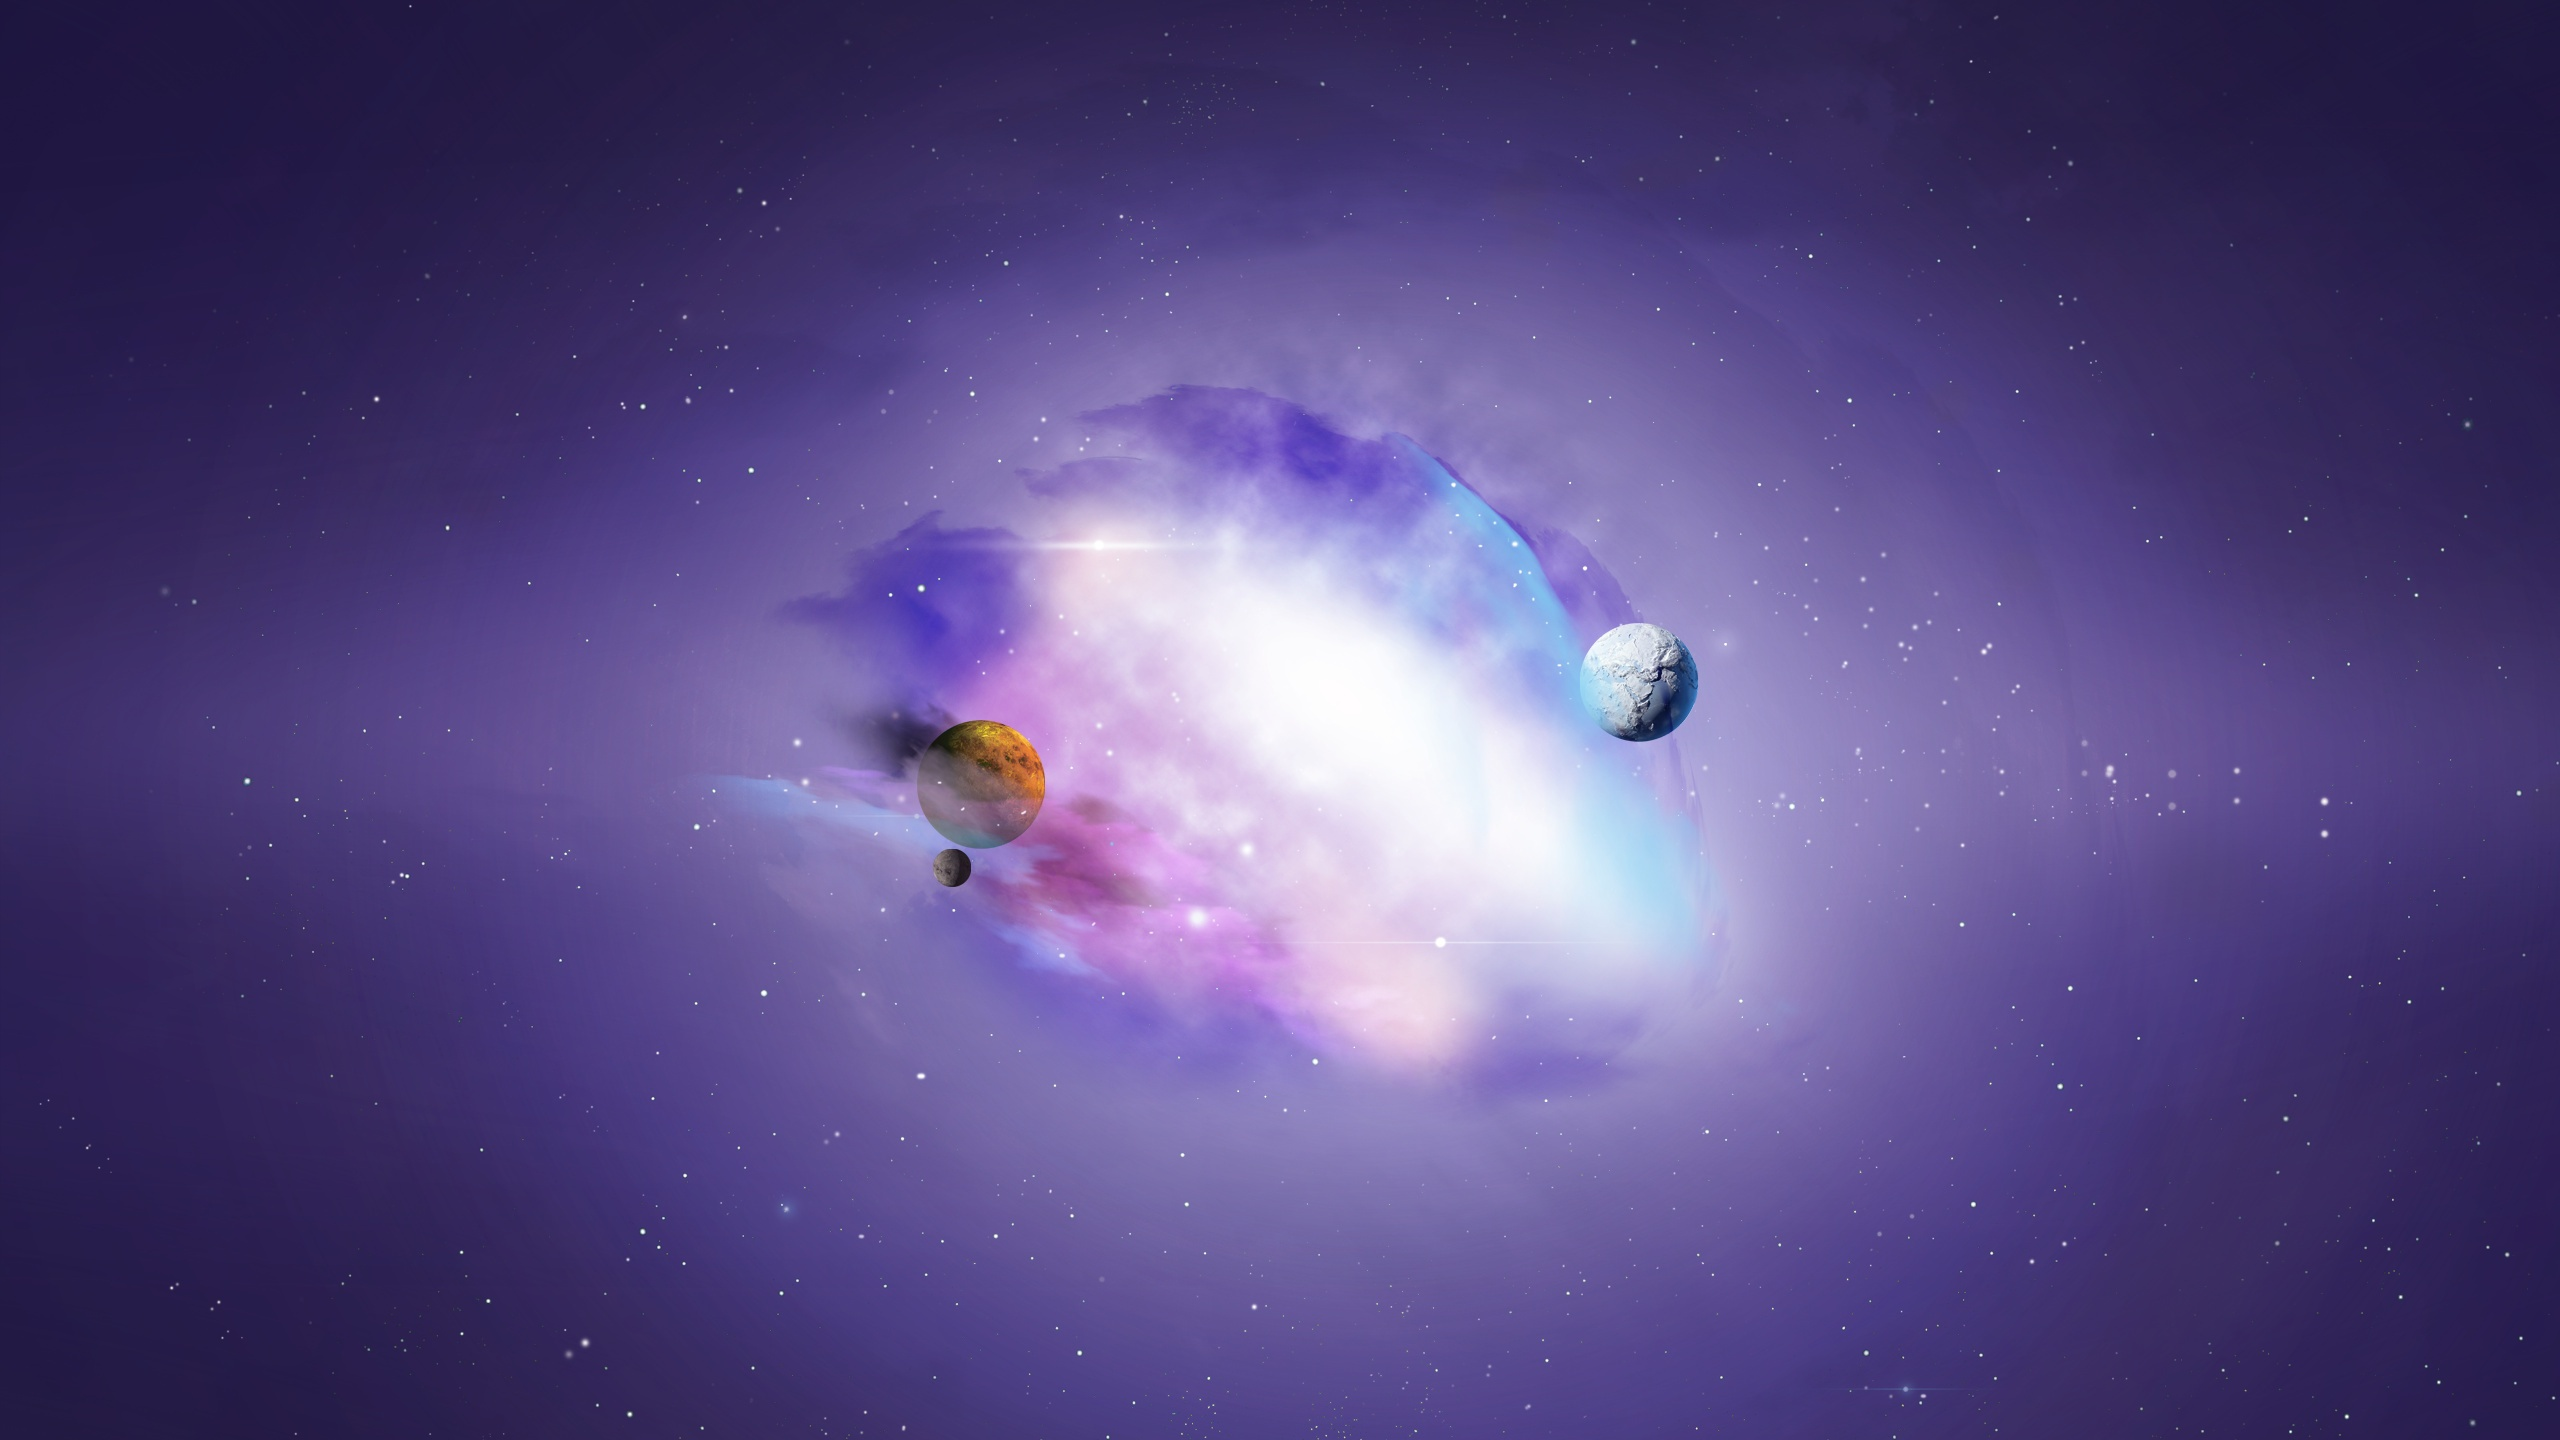 purple universe galaxy wallpapers - 2560x1440 - 415448